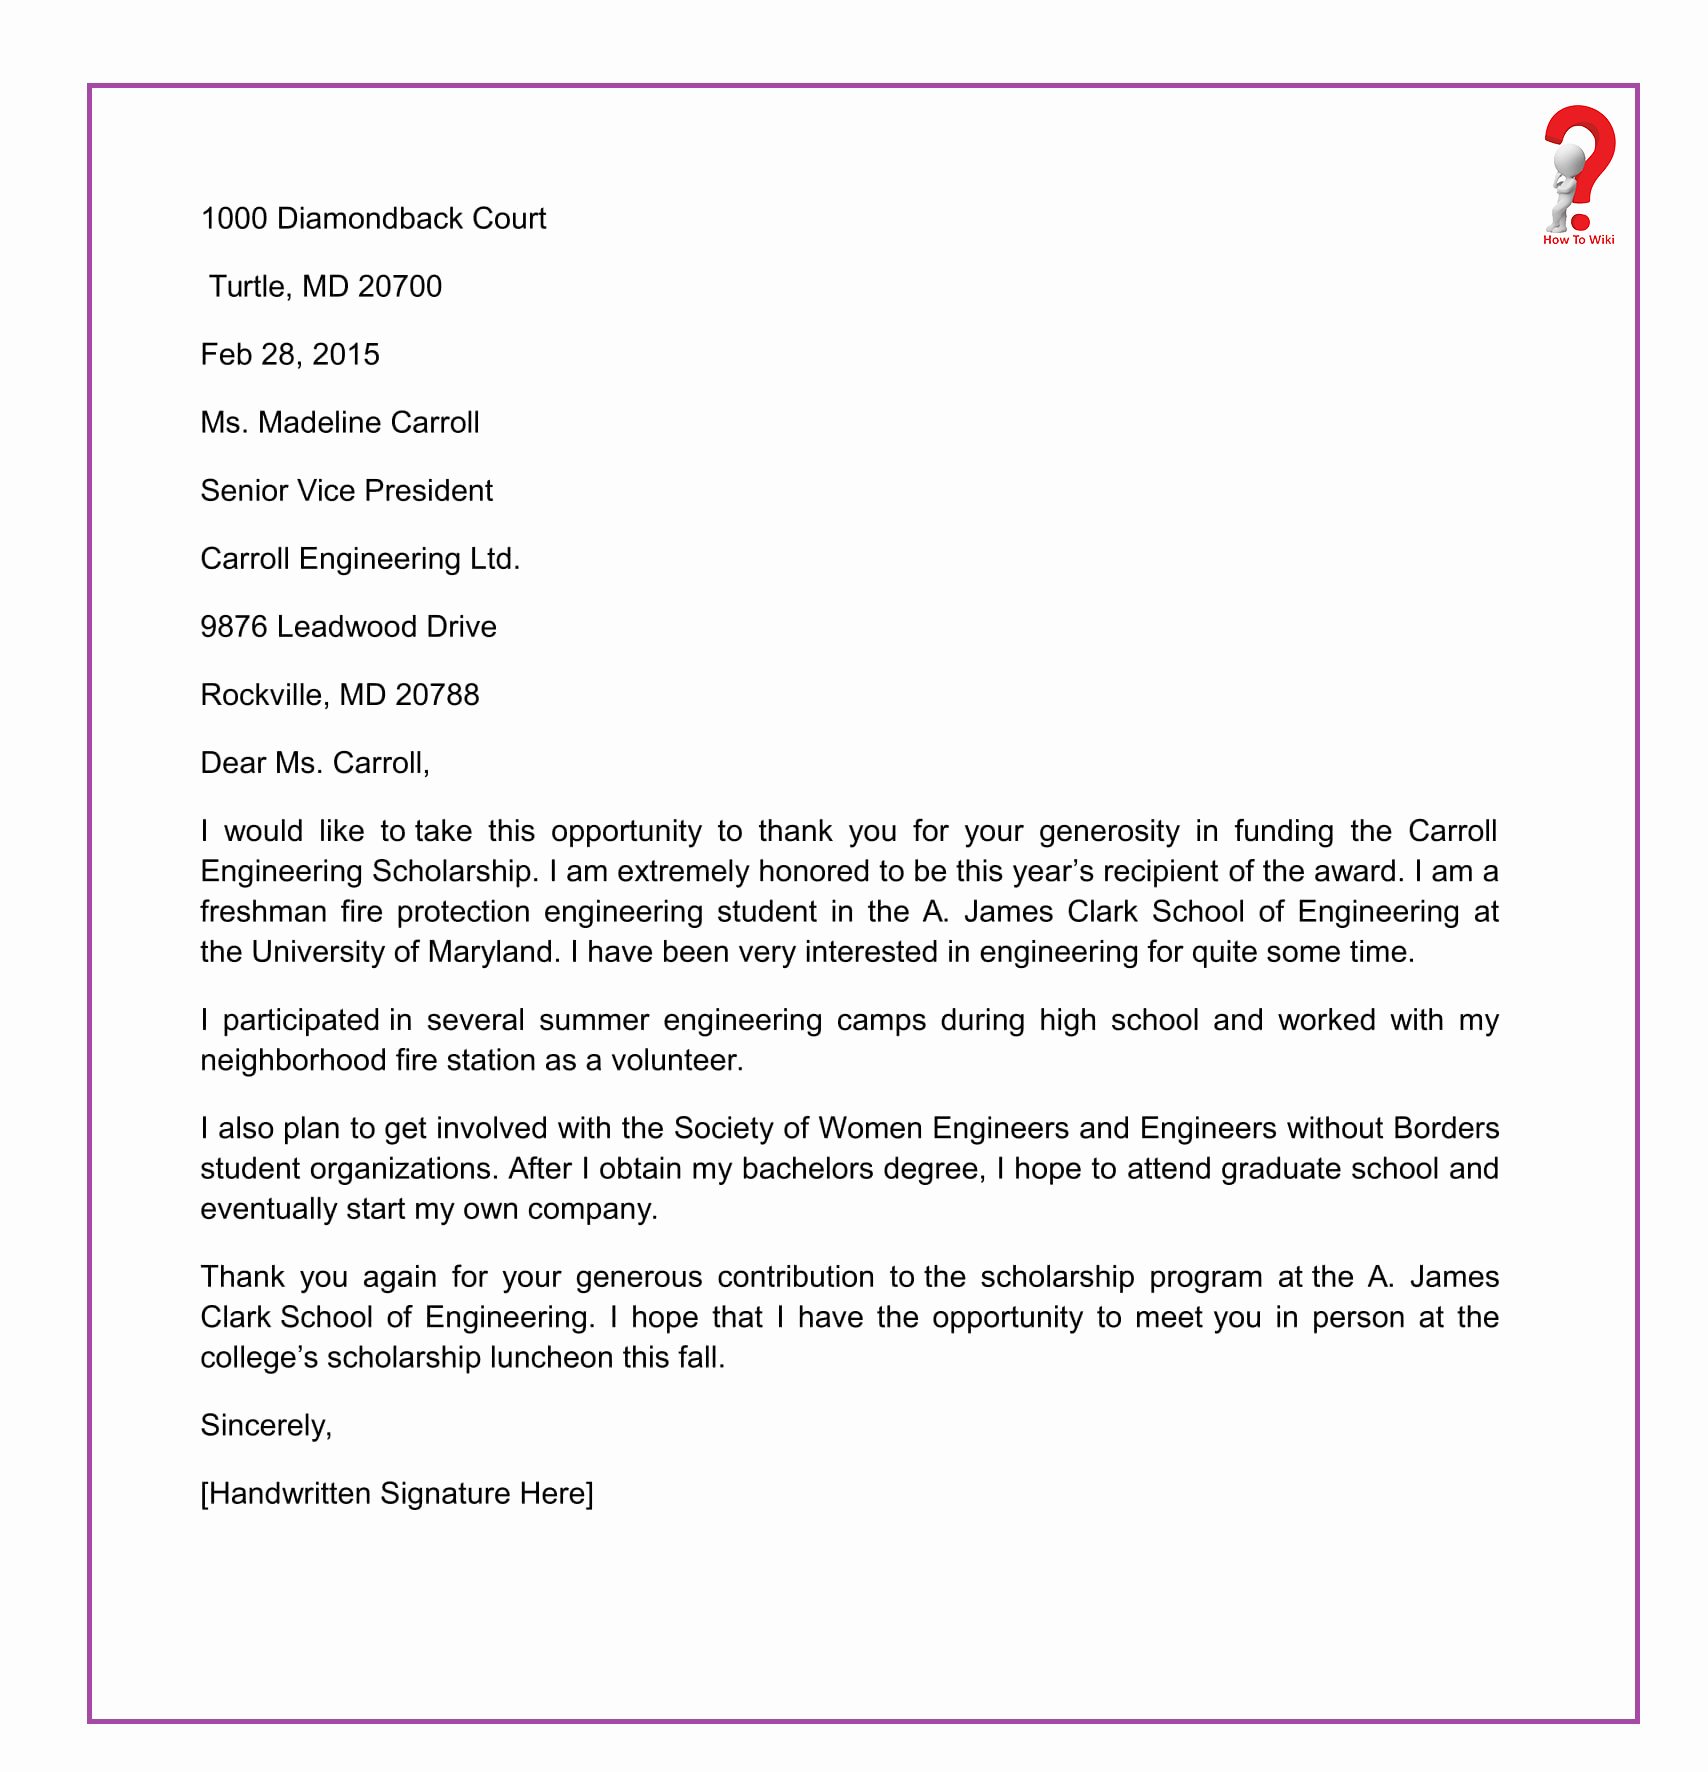 Scholarship Thank You Letter Template Lovely How to Write Thank You Letter for Scholarship